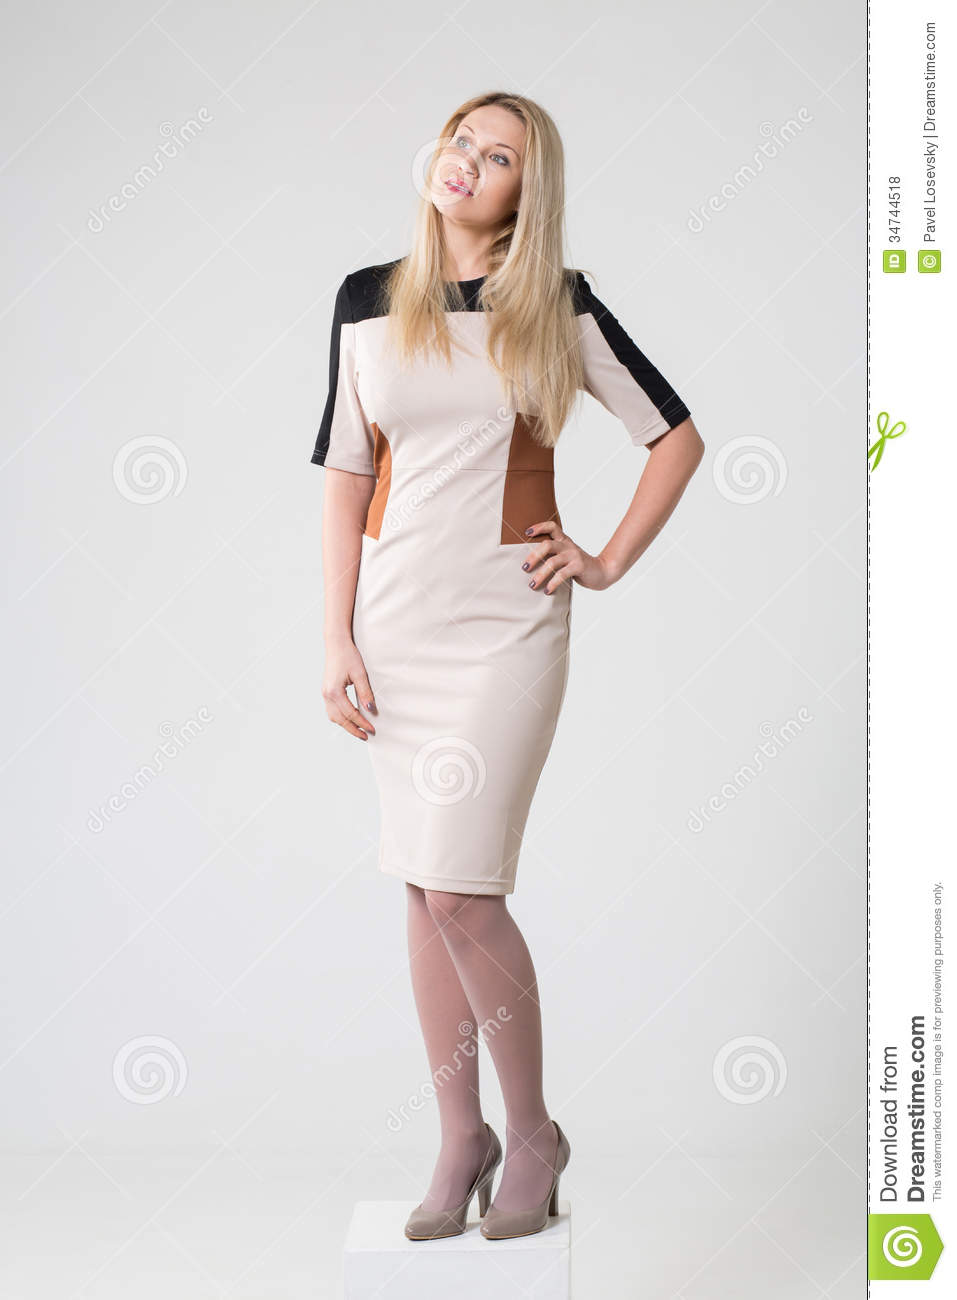 Beautiful thoughtful girl in a beige dress and shoes